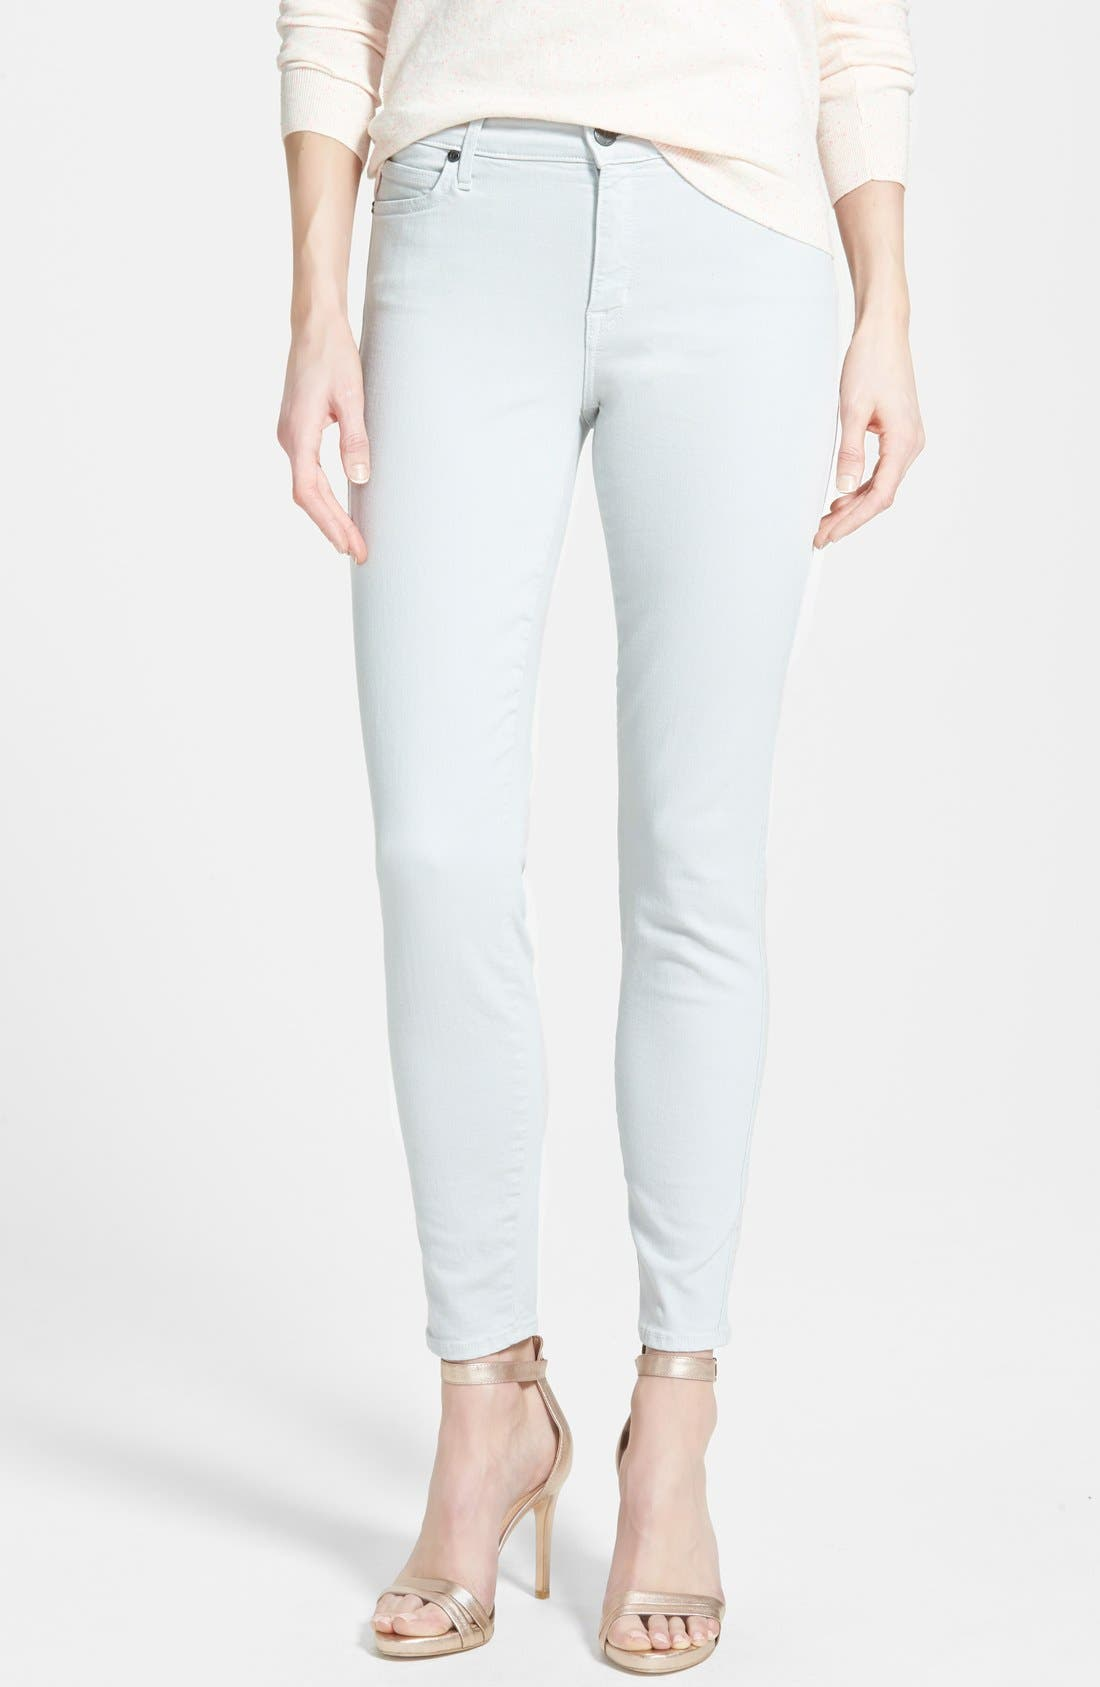 'Wisdom' Colored Stretch Ankle Skinny Jeans,                             Main thumbnail 1, color,                             098